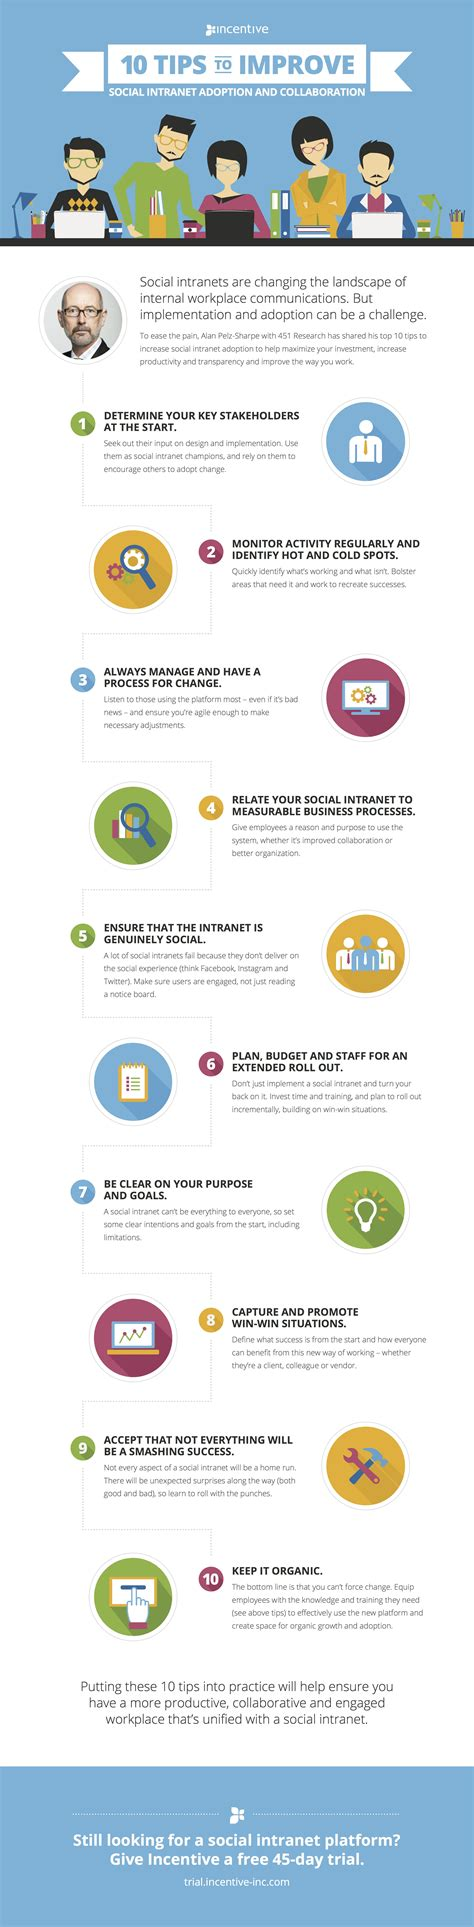 best social intranet the top 10 tips to improve social intranet adoption